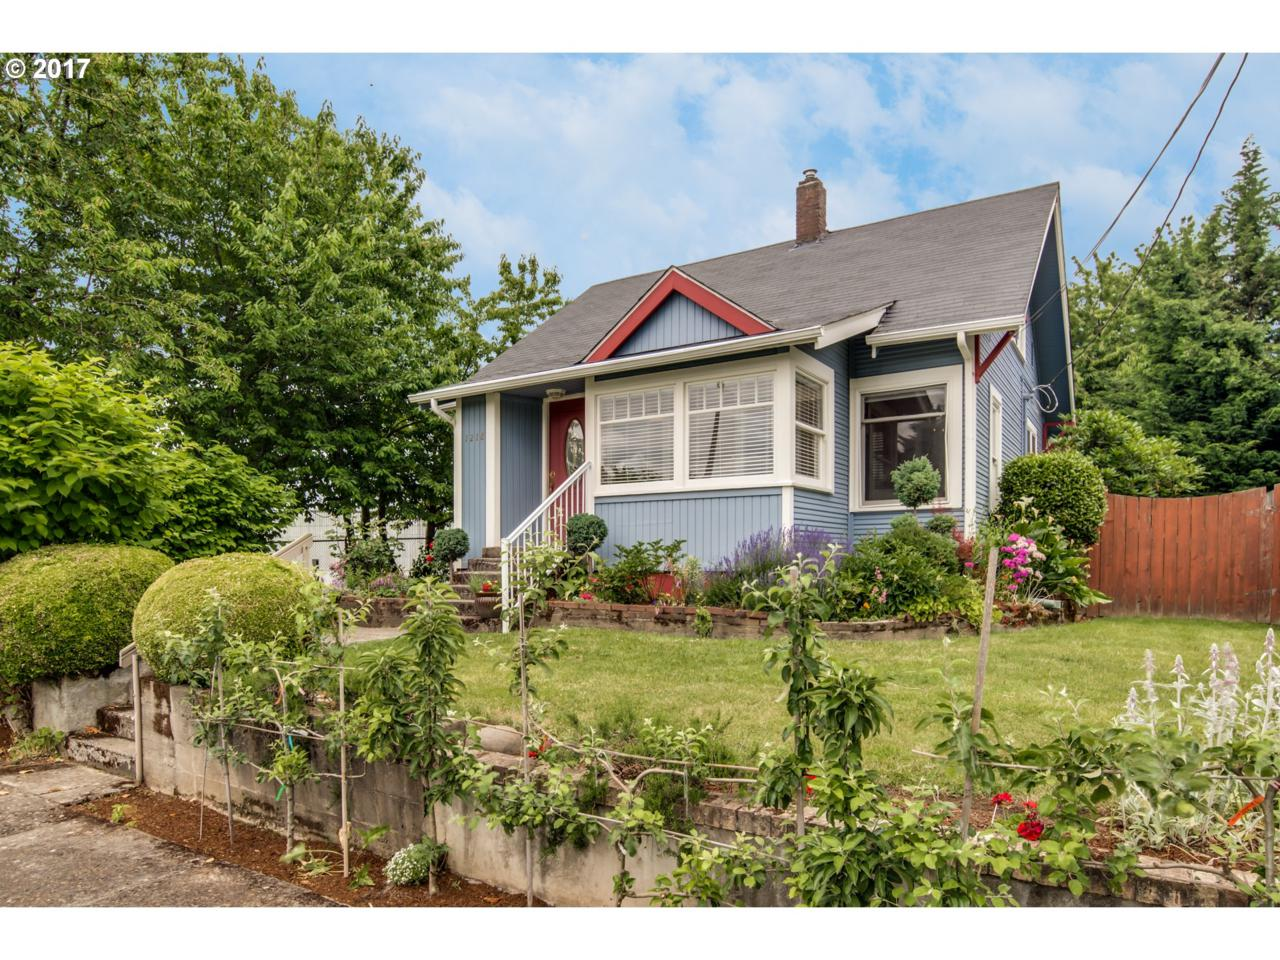 1218 W 23RD St, Vancouver, WA 98660 (MLS #17623386) :: The Dale Chumbley Group